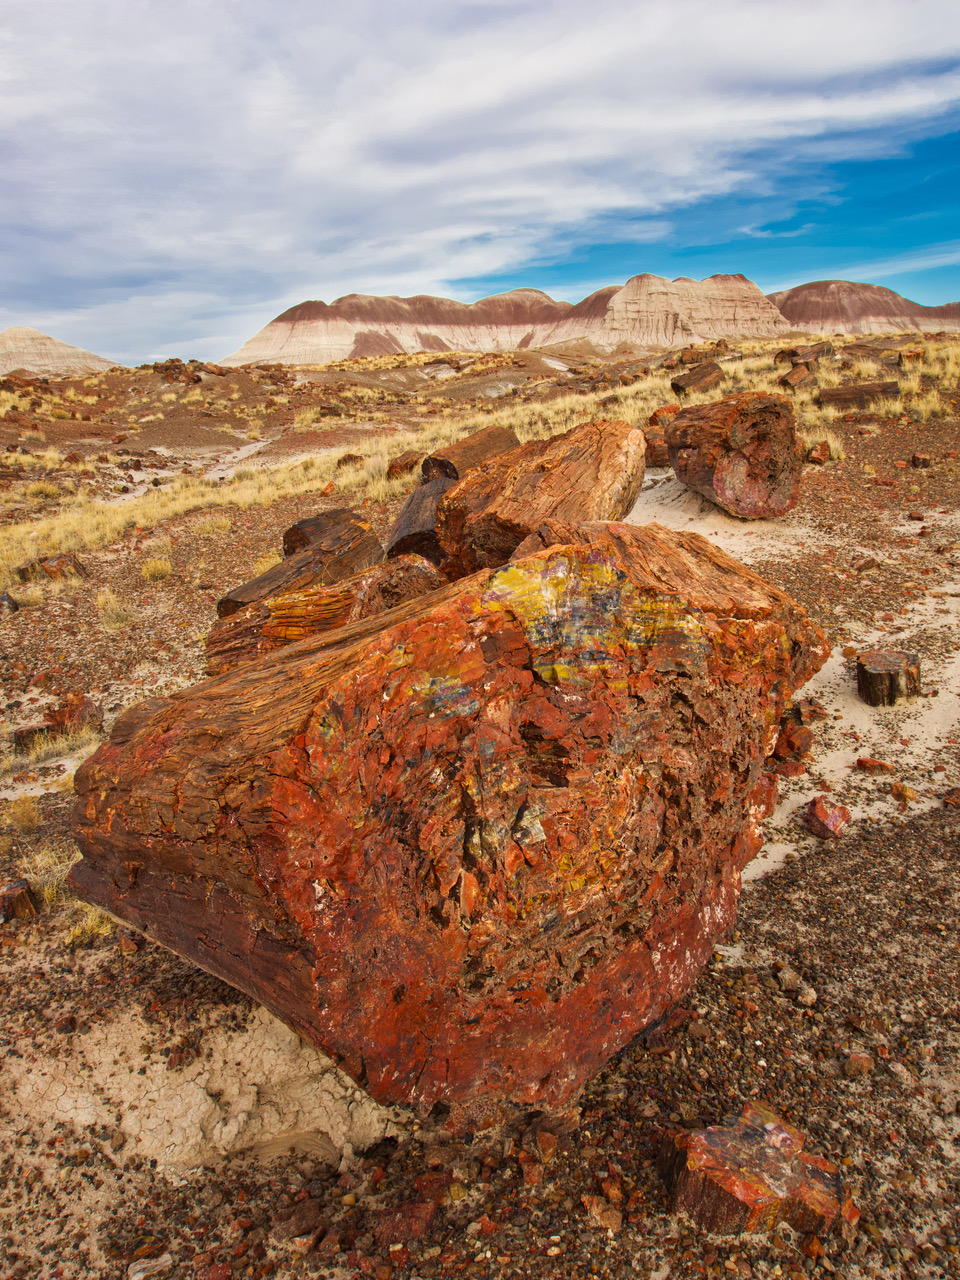 pf14-PB270560 Petrified Forest.jpg